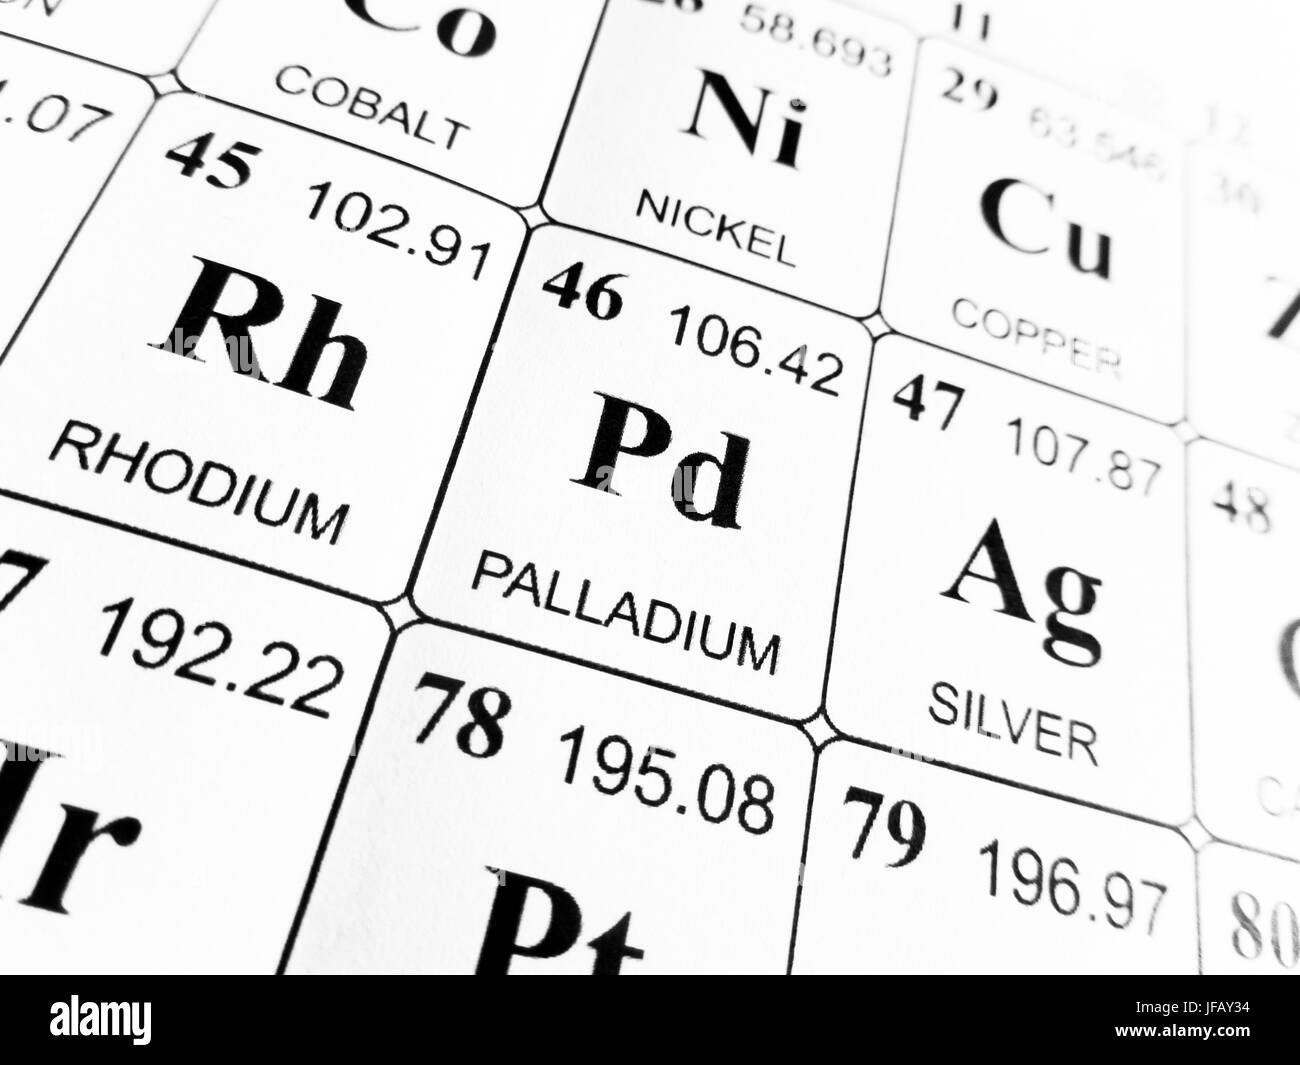 Palladium on the periodic table of the elements stock photo palladium on the periodic table of the elements gamestrikefo Image collections